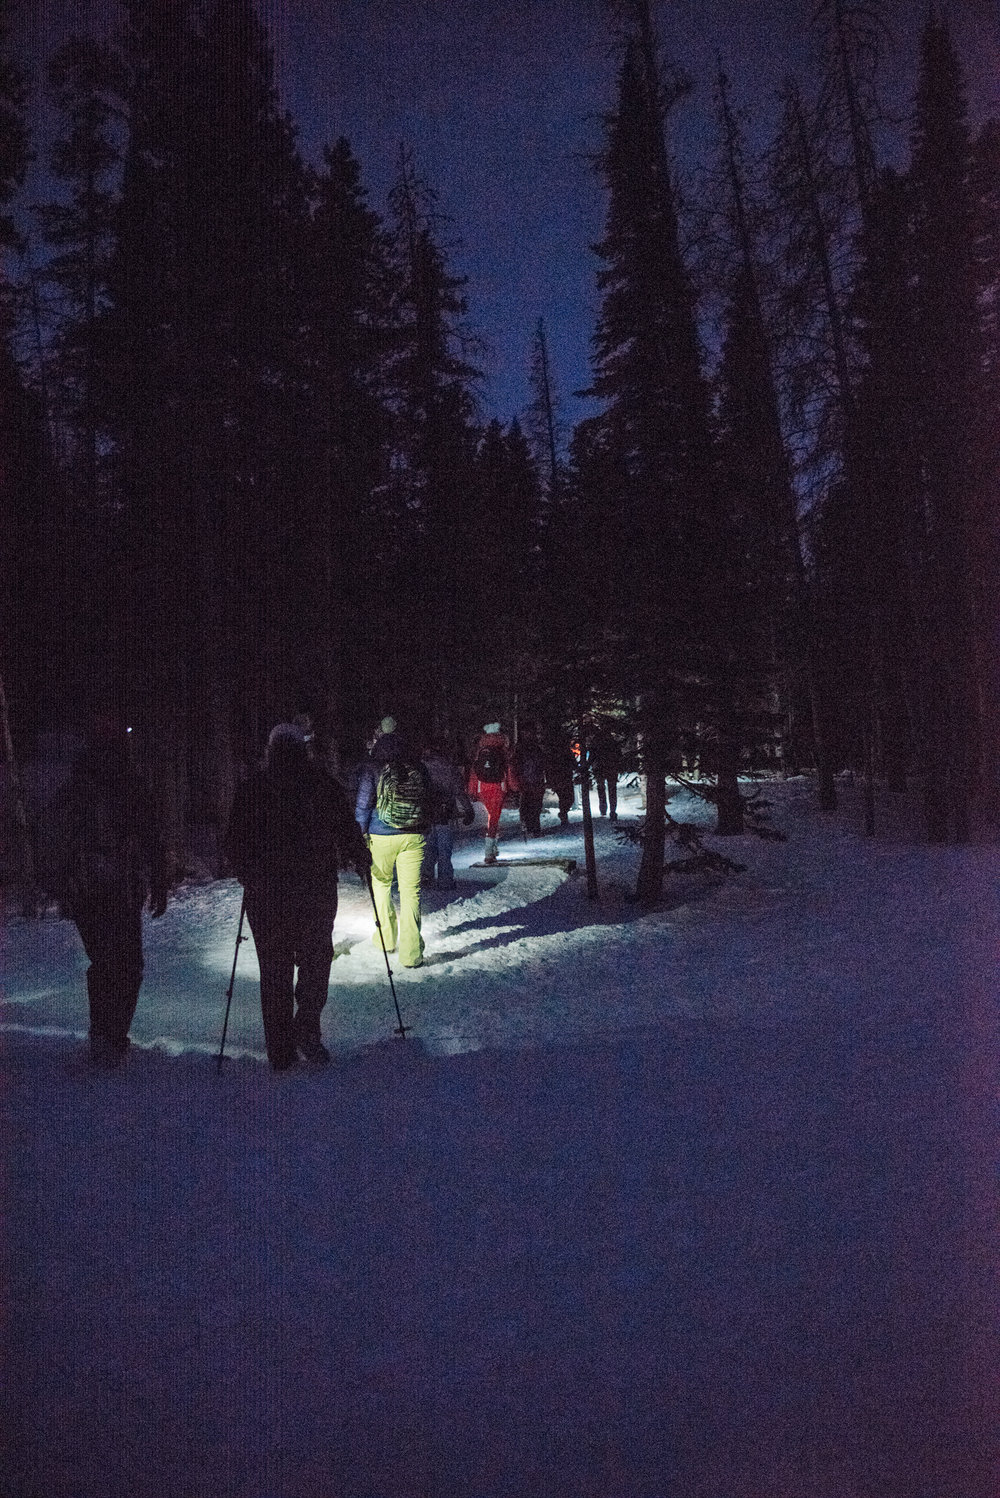 In the mountains, under the stars with amazing women. Nothing better.